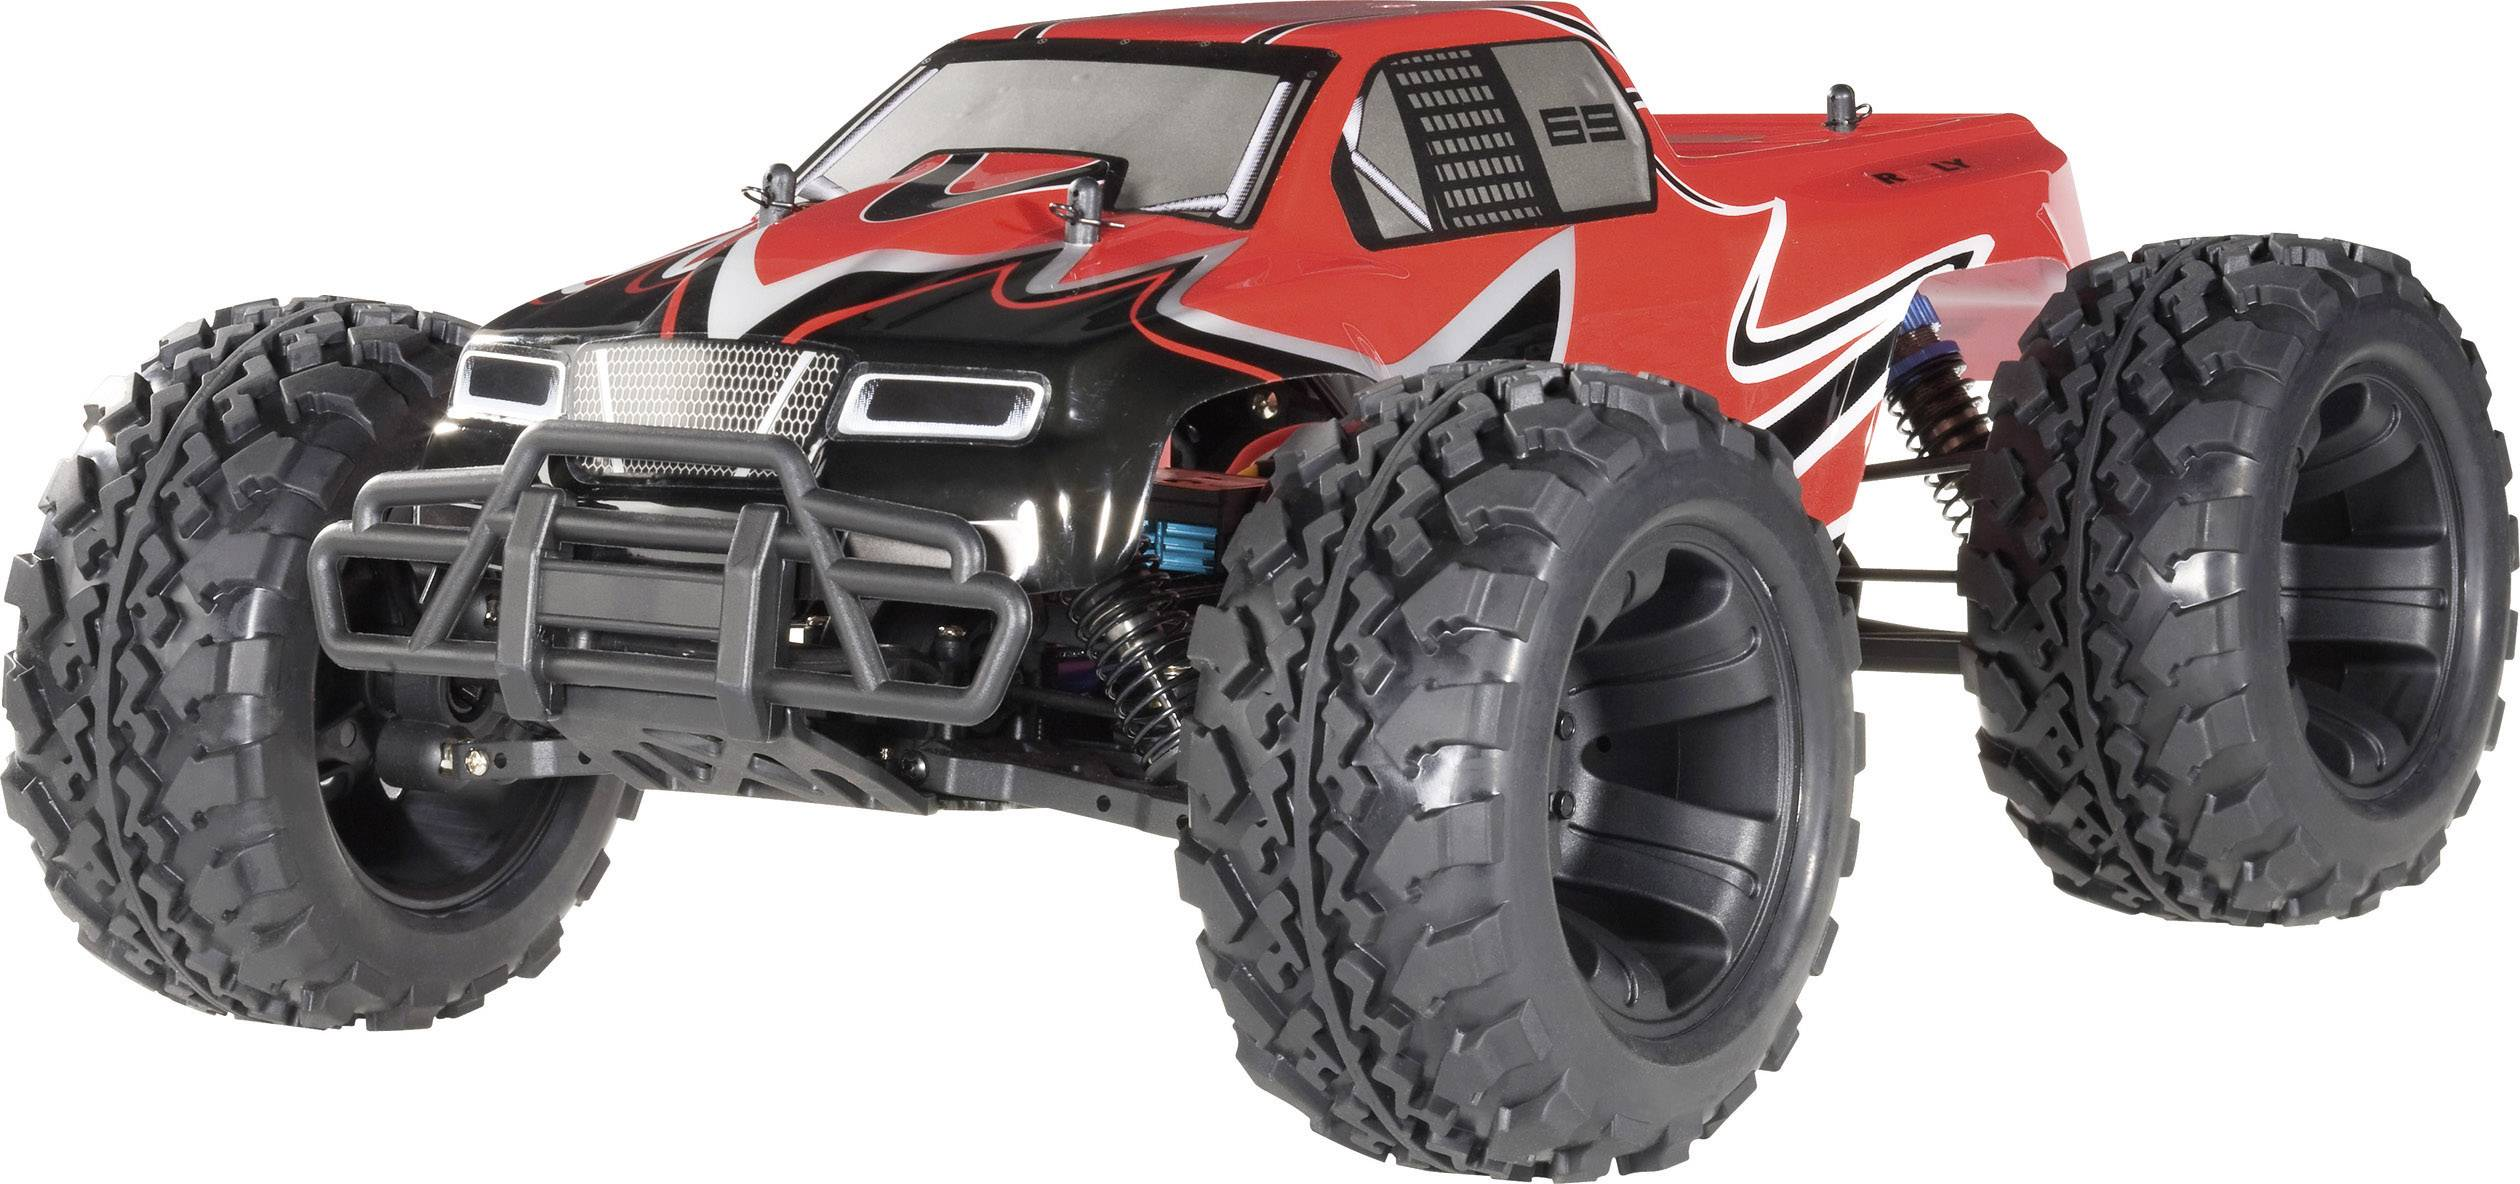 RC model auta monster truck Reely Titan, 1:10, 4WD (4x4), stavebnice